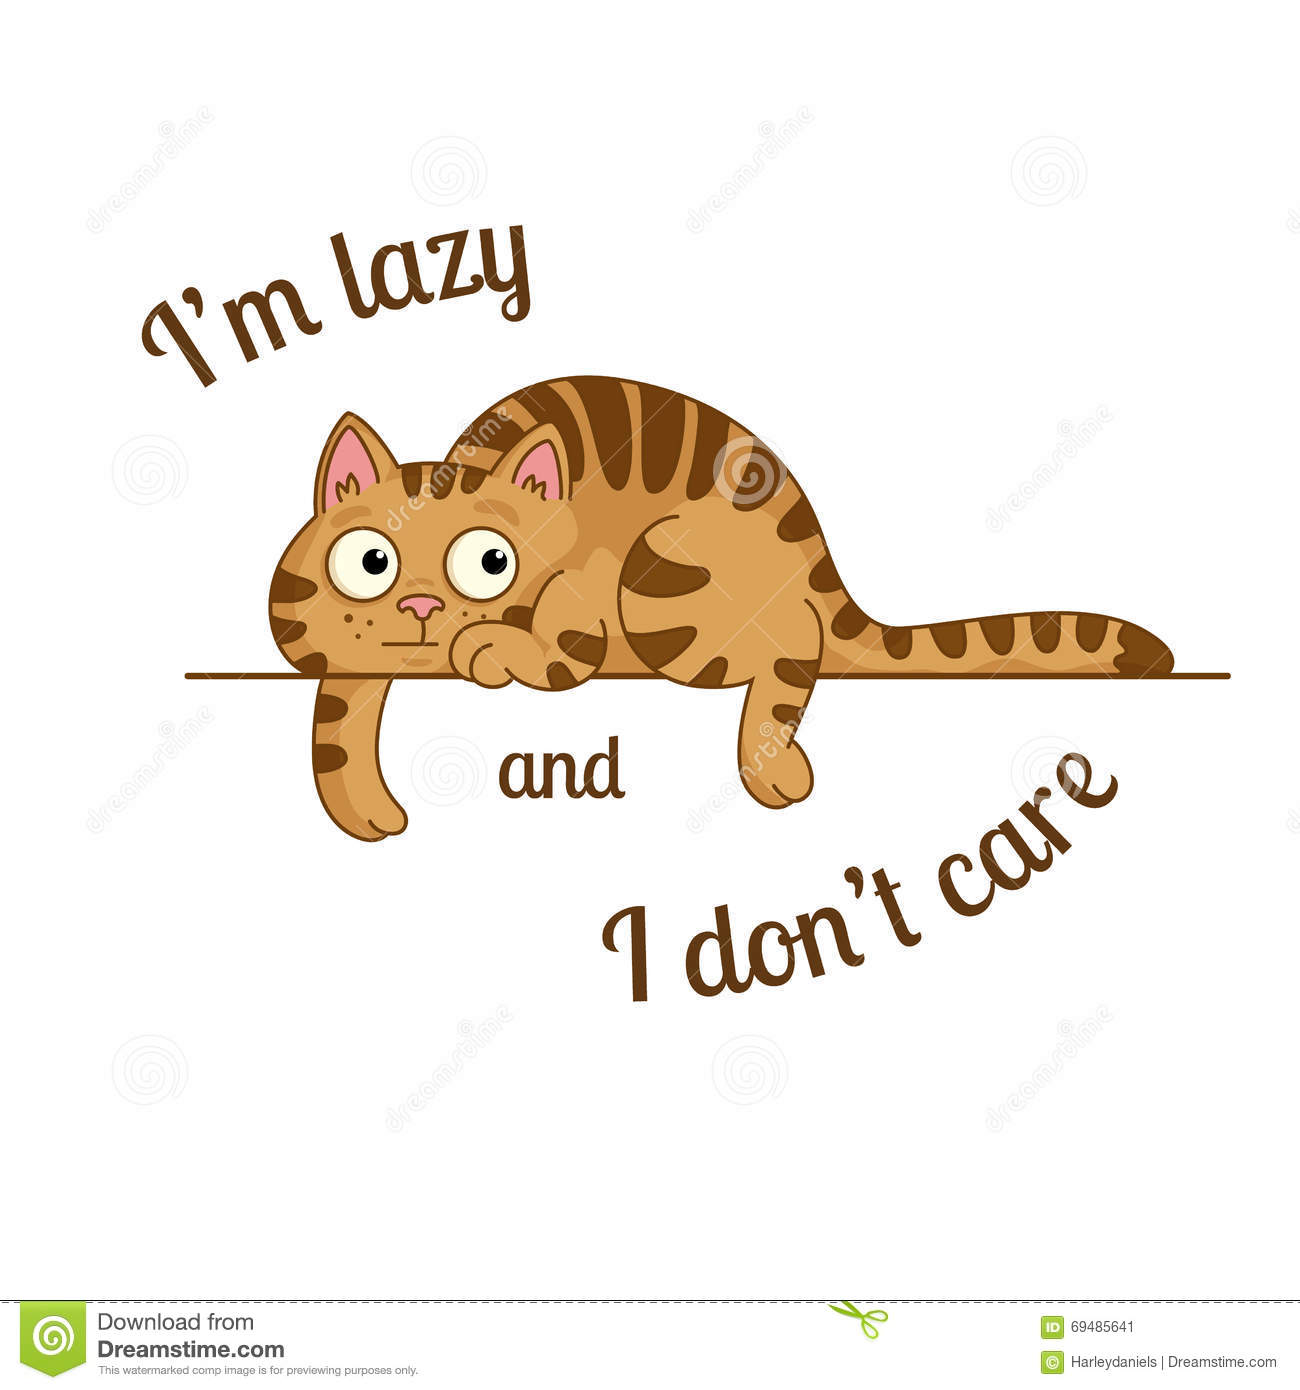 lazy cat clipart - photo #17